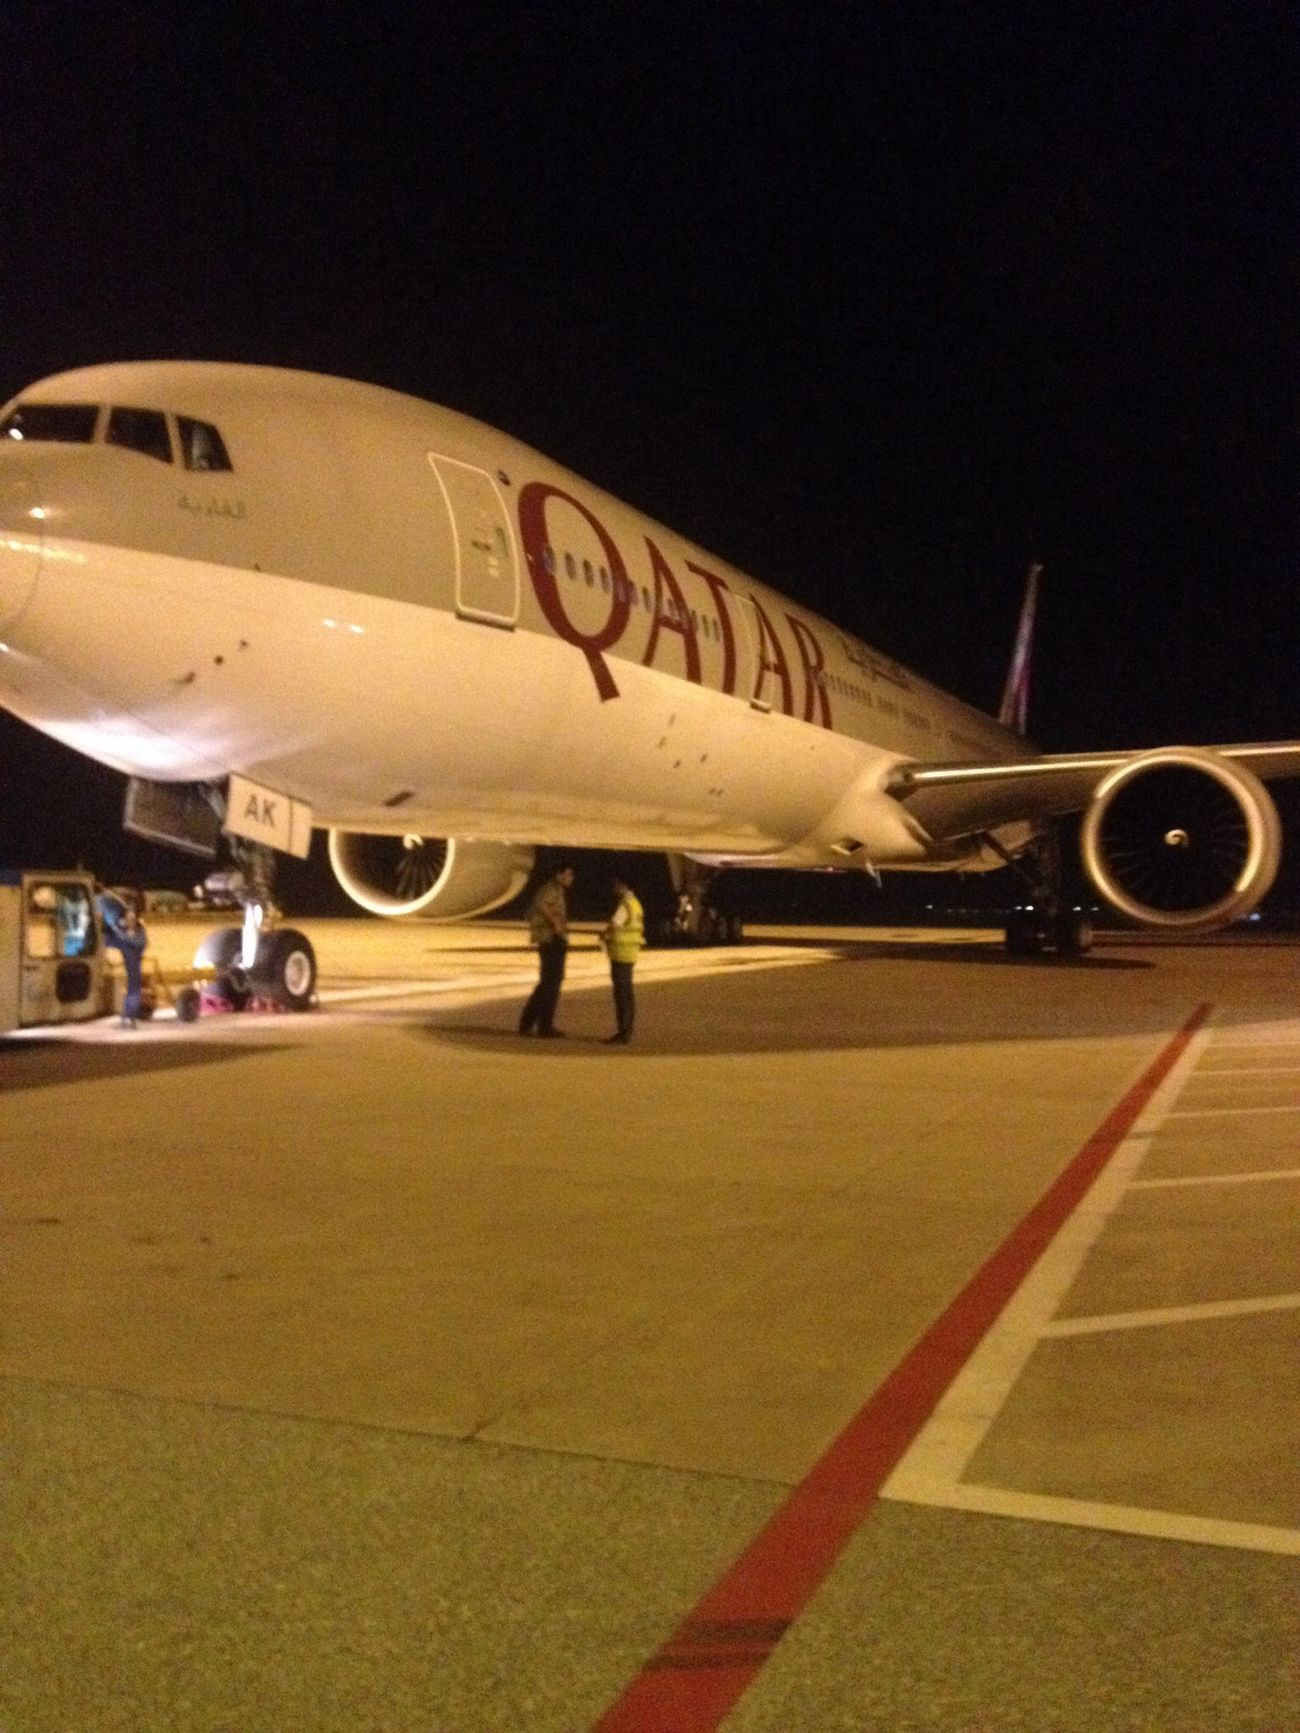 Parking in the Gate 619 so far away from me。QATAR f li g h t on time